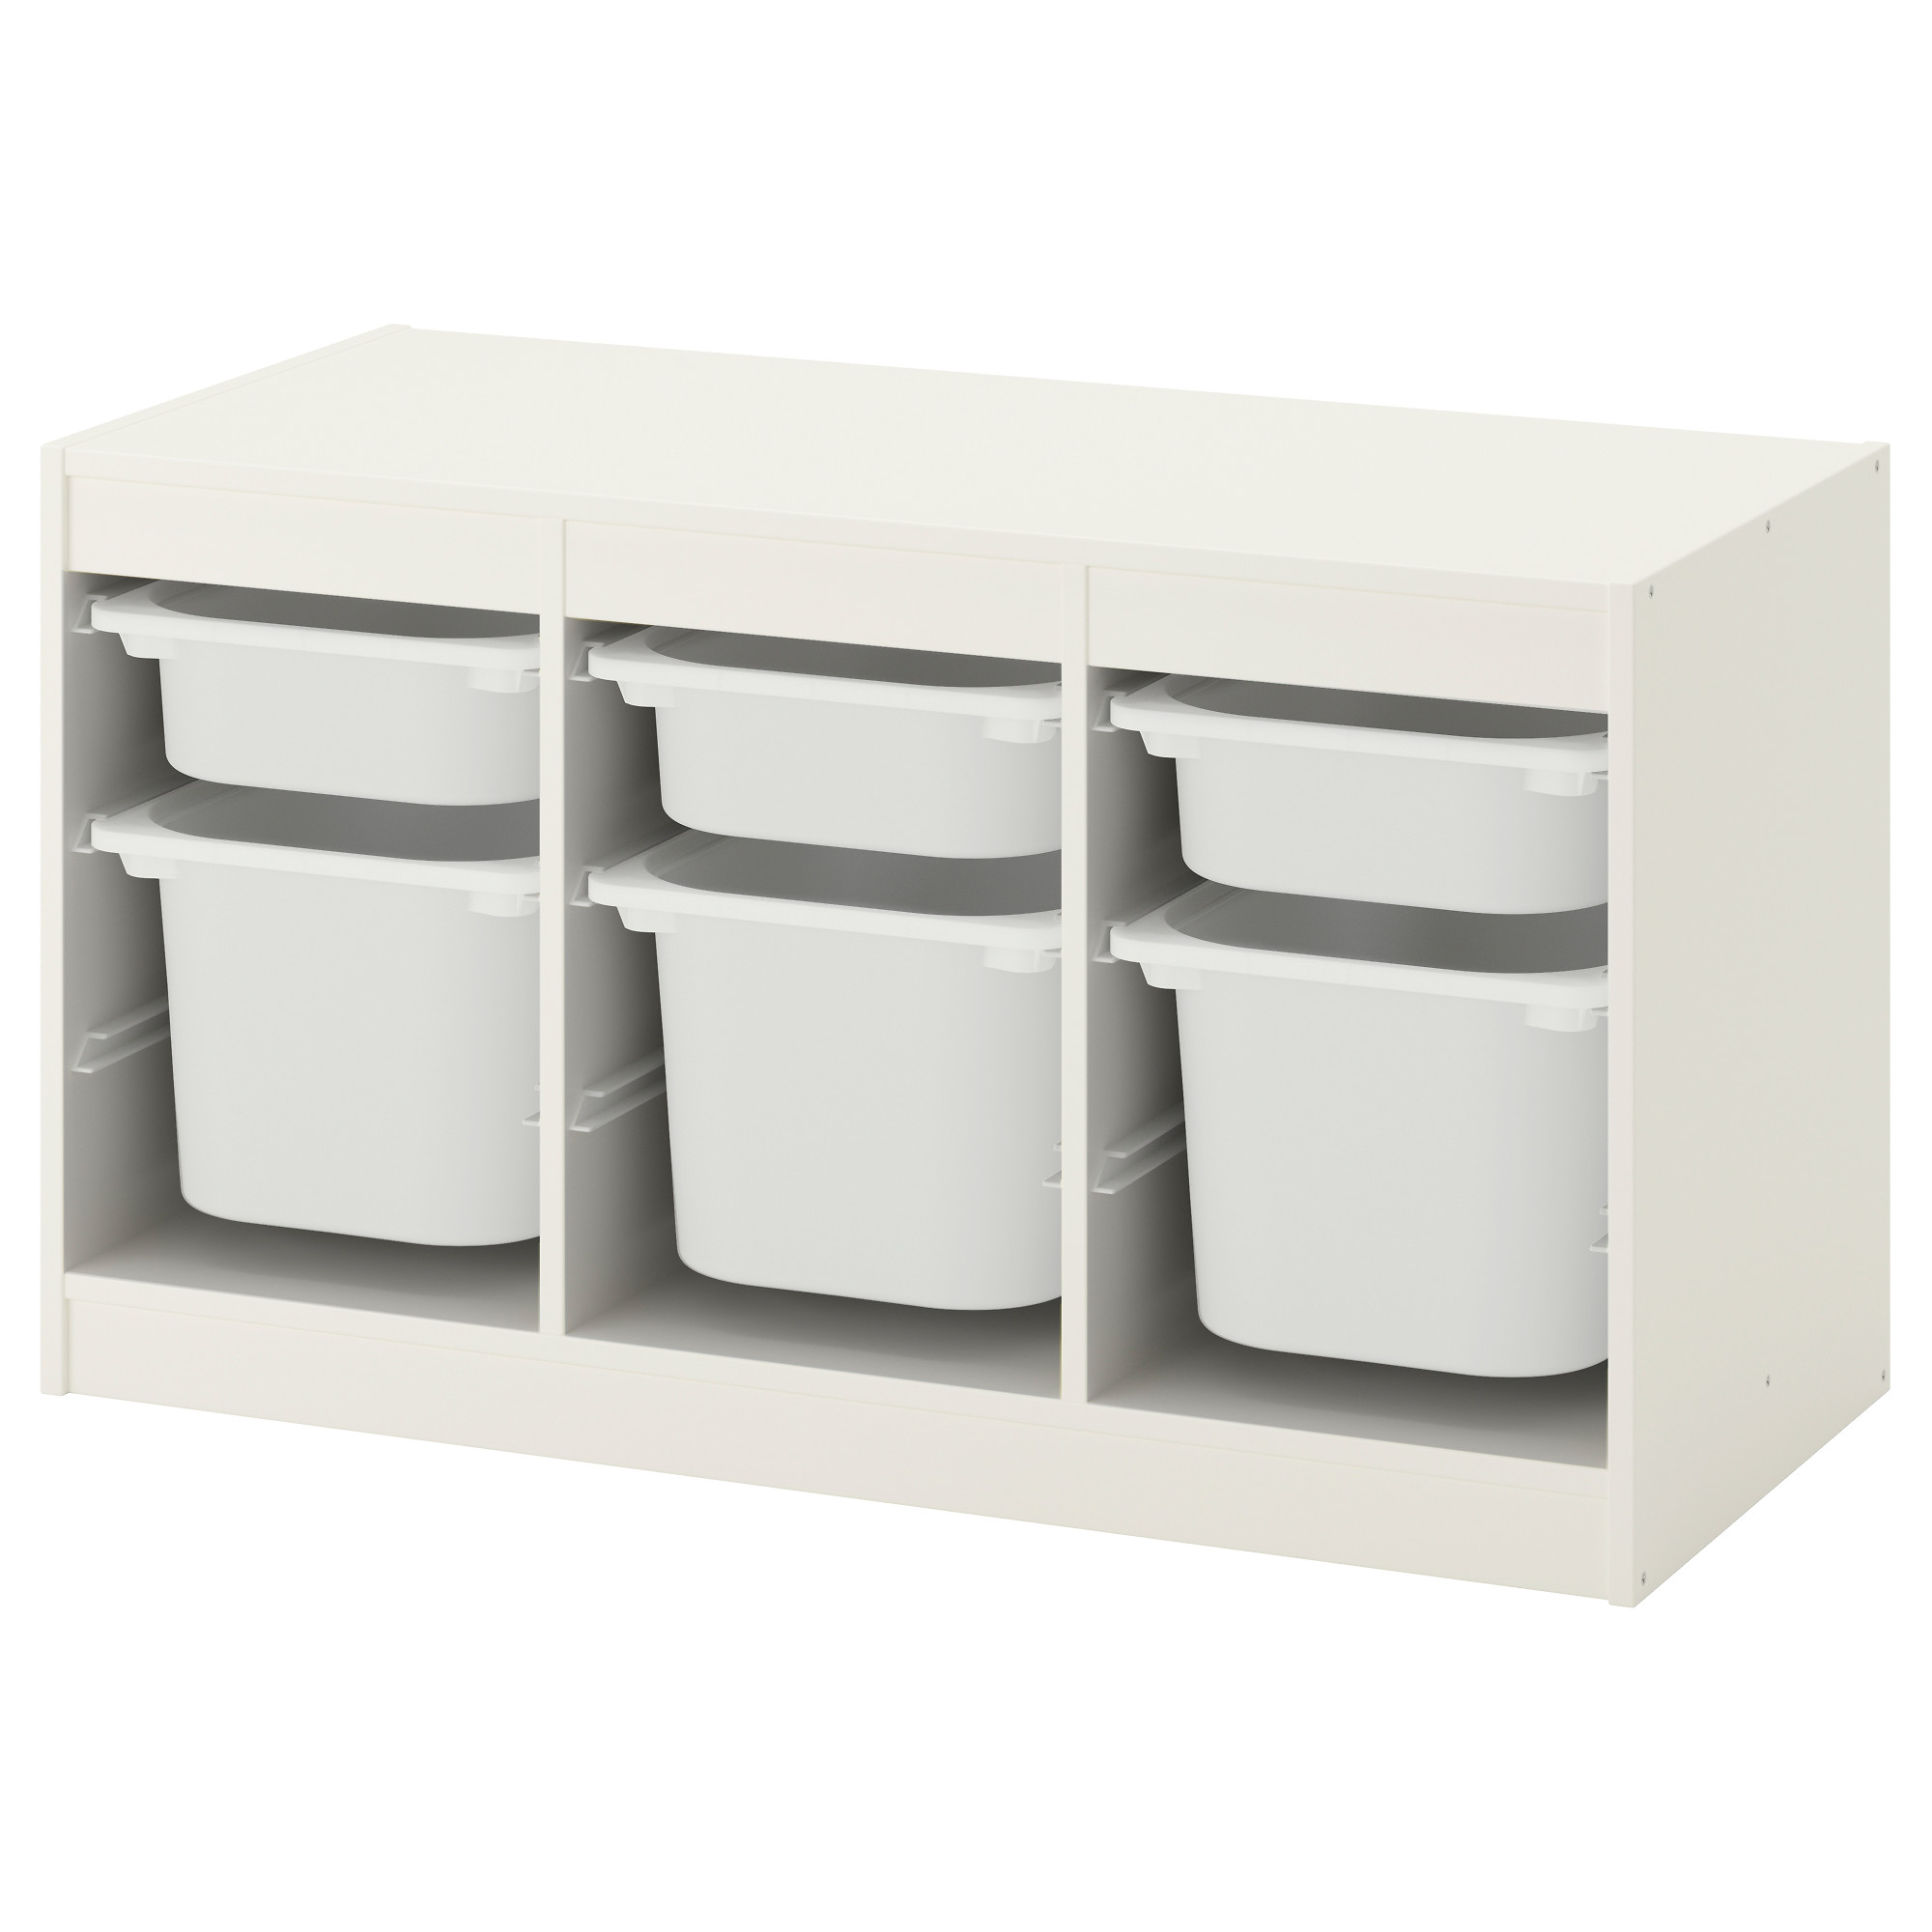 Design Ikea Kids Storage kids storage furniture ikea trofast combination with boxes white width 39 height 22